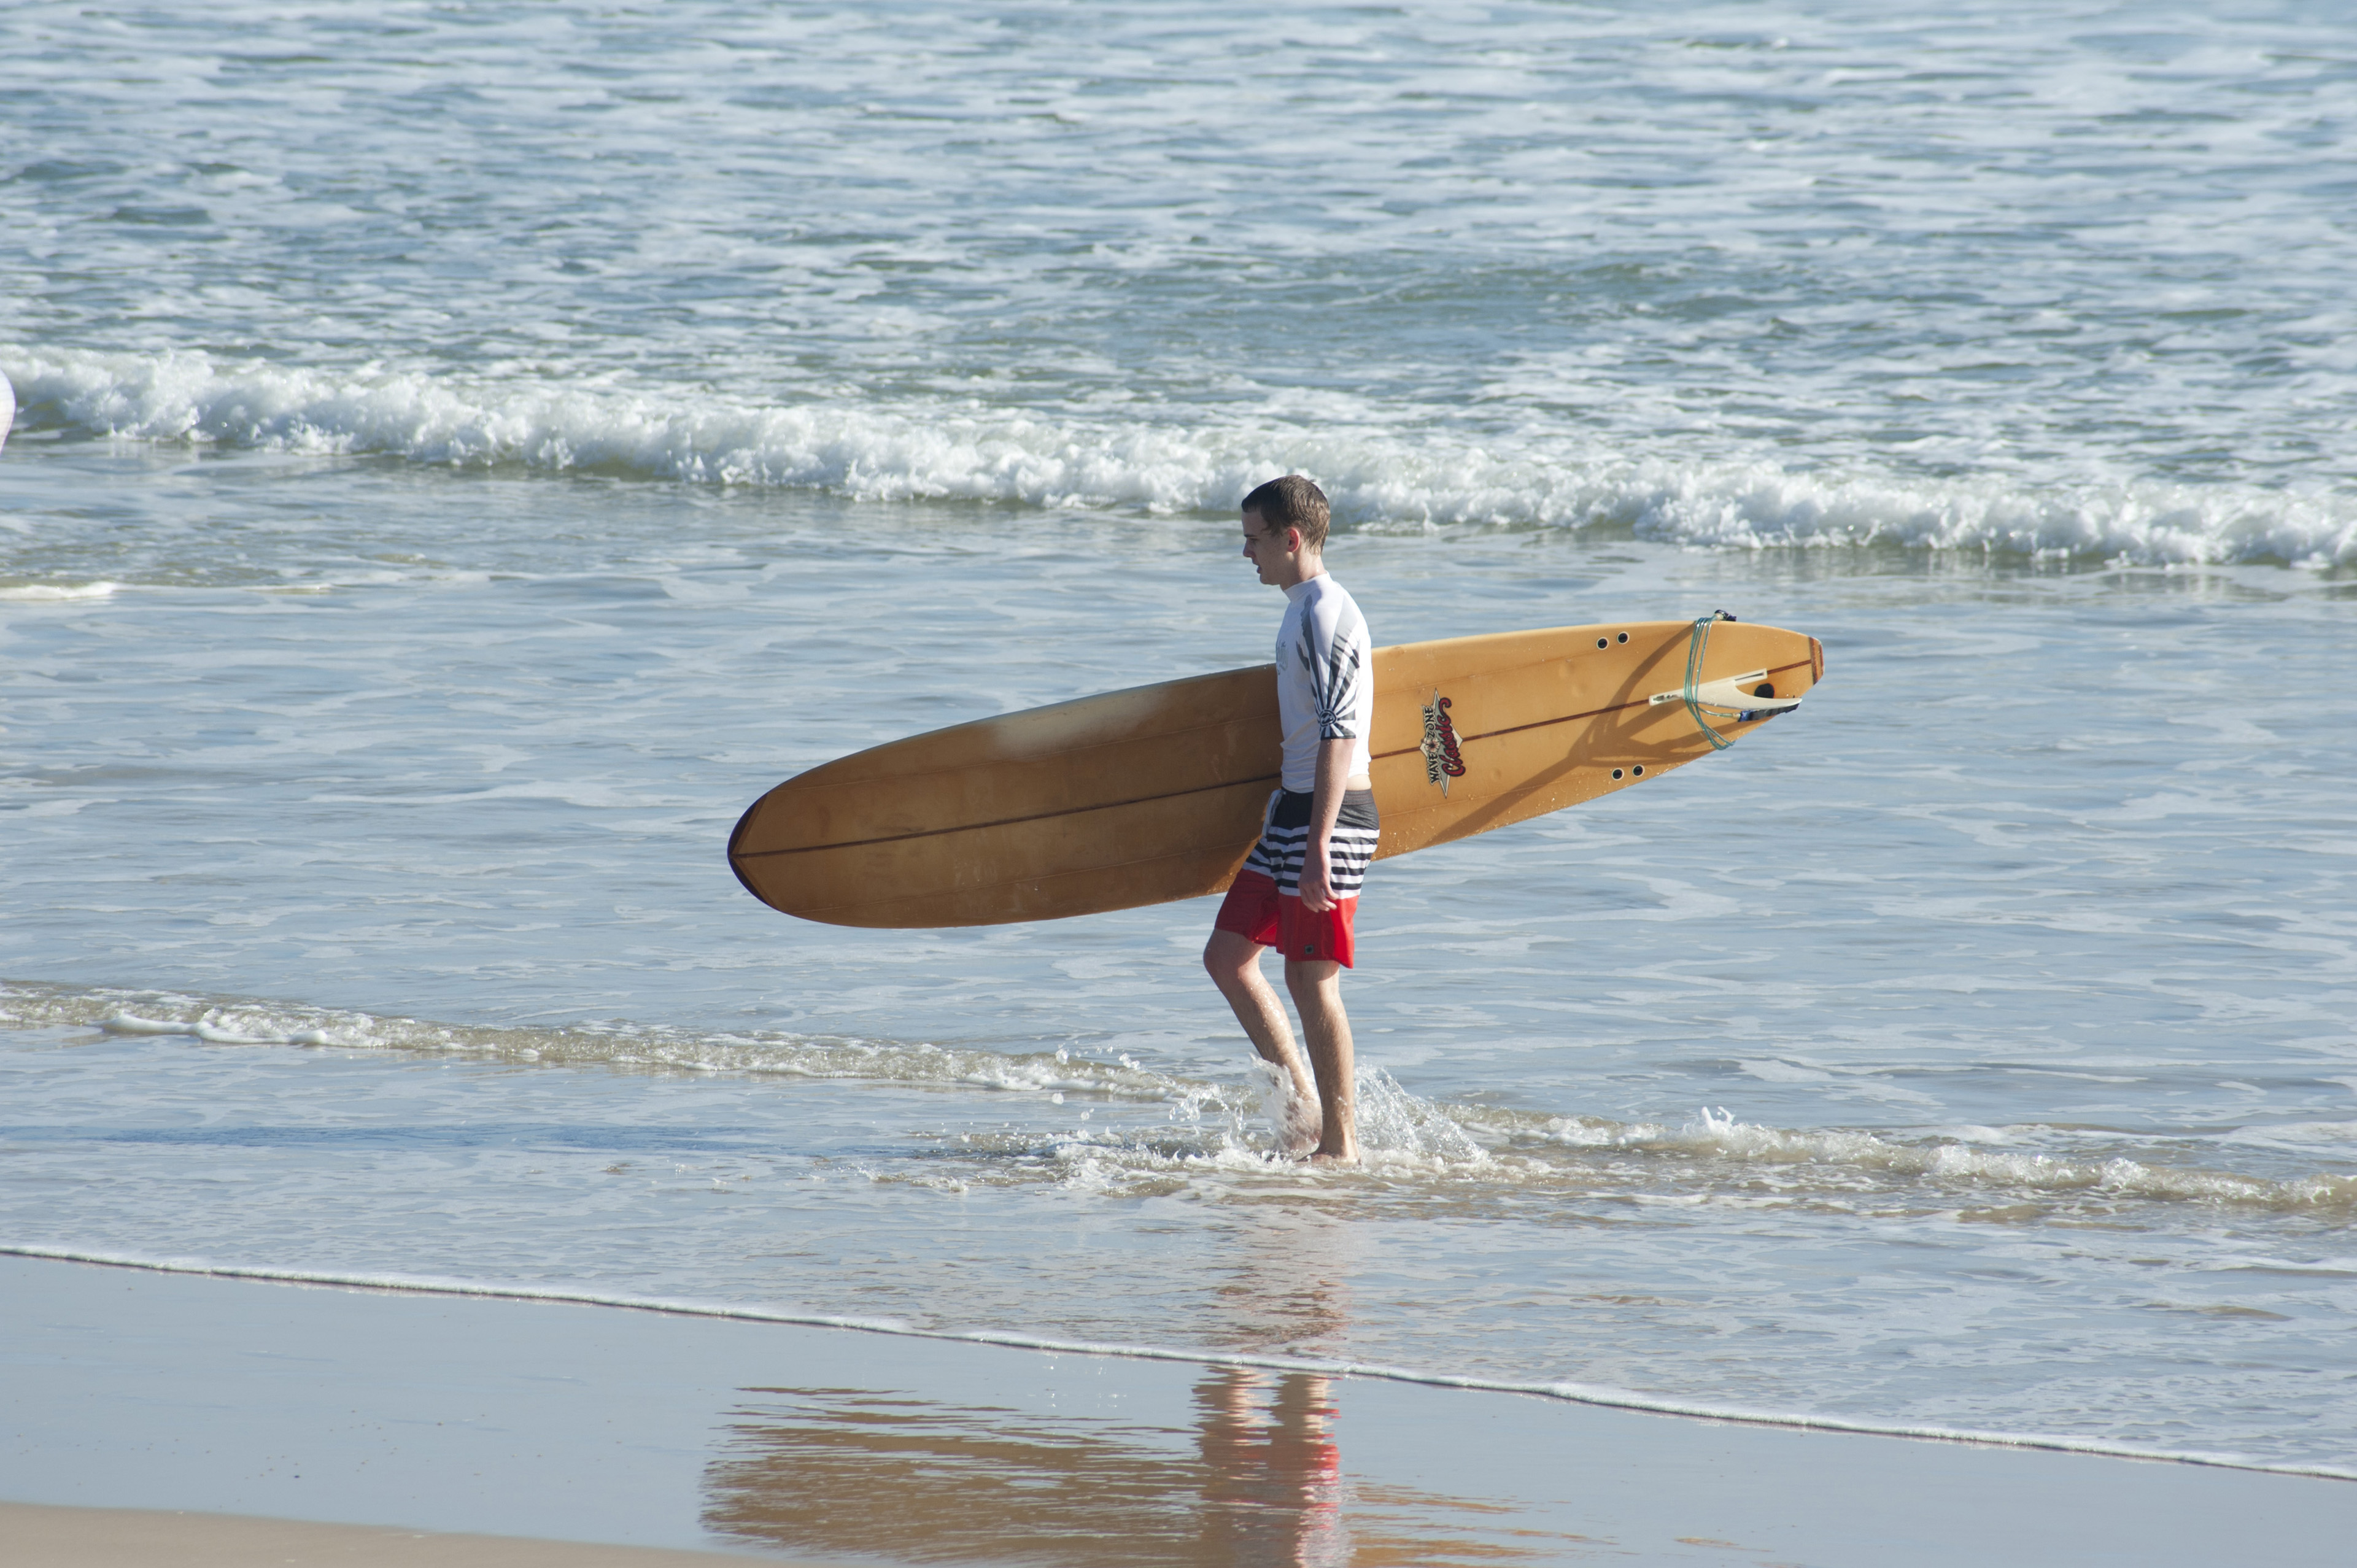 Surfer walking along the waters edge on the beach sand carrying his surfboard under his arm, side view on a sunny summer day